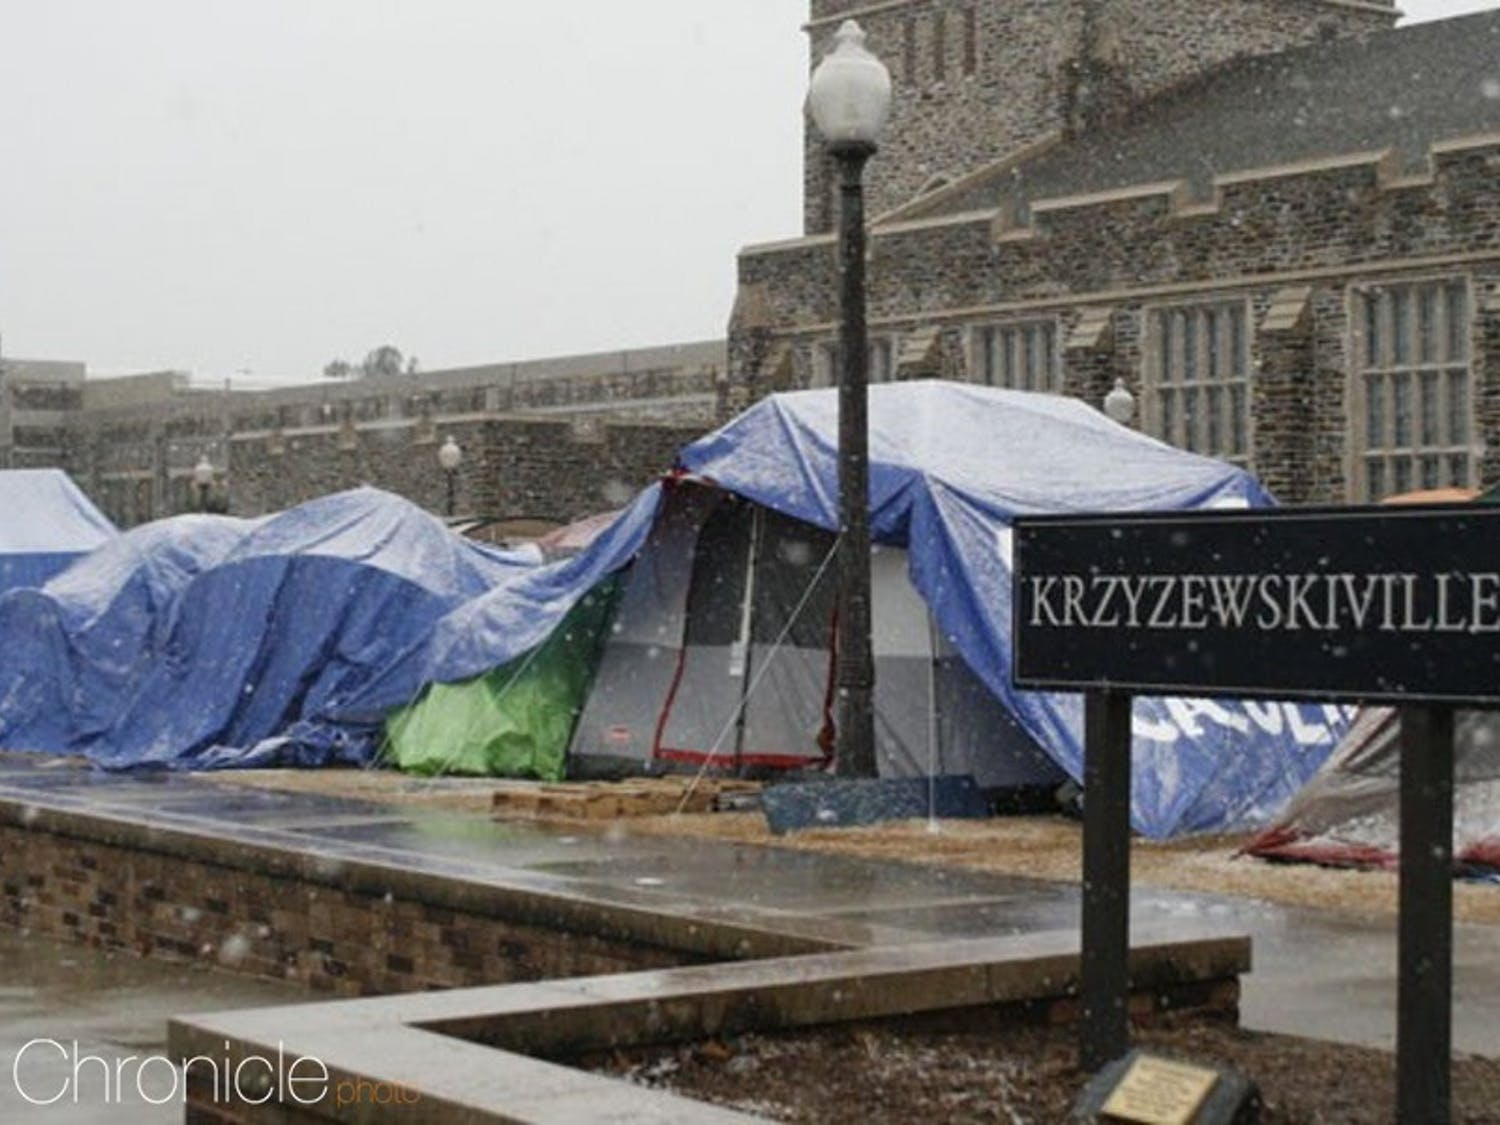 Duke students will move into Krzyzewskiville Saturday for the start of black tenting.